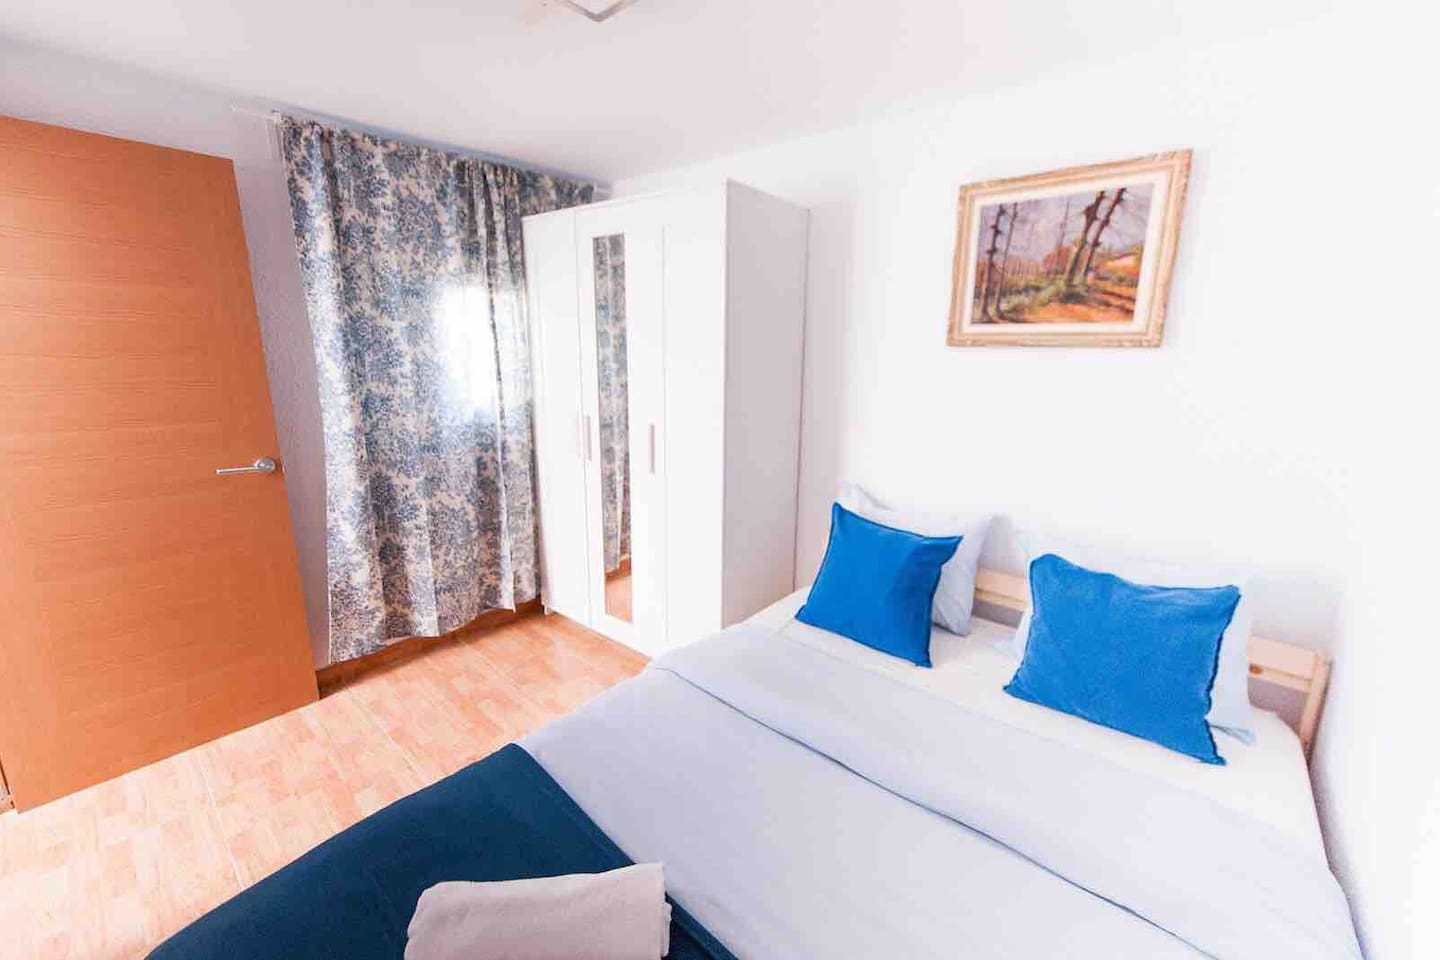 Your private room with double bed. The bedroom's door has a lock.